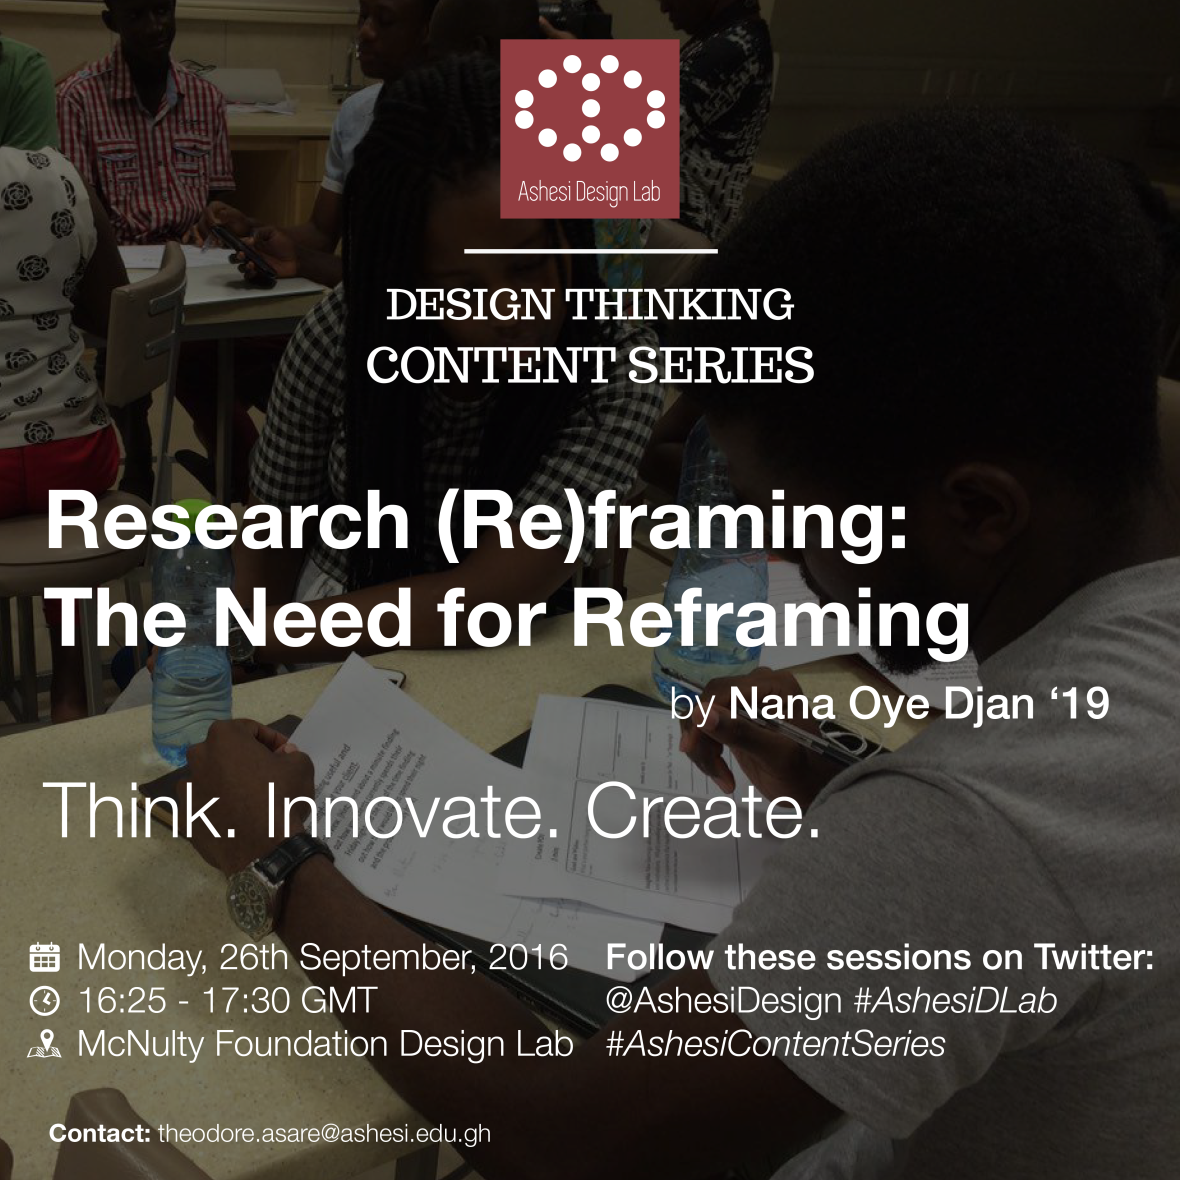 ashesi-dlab-content-series-reframing-01